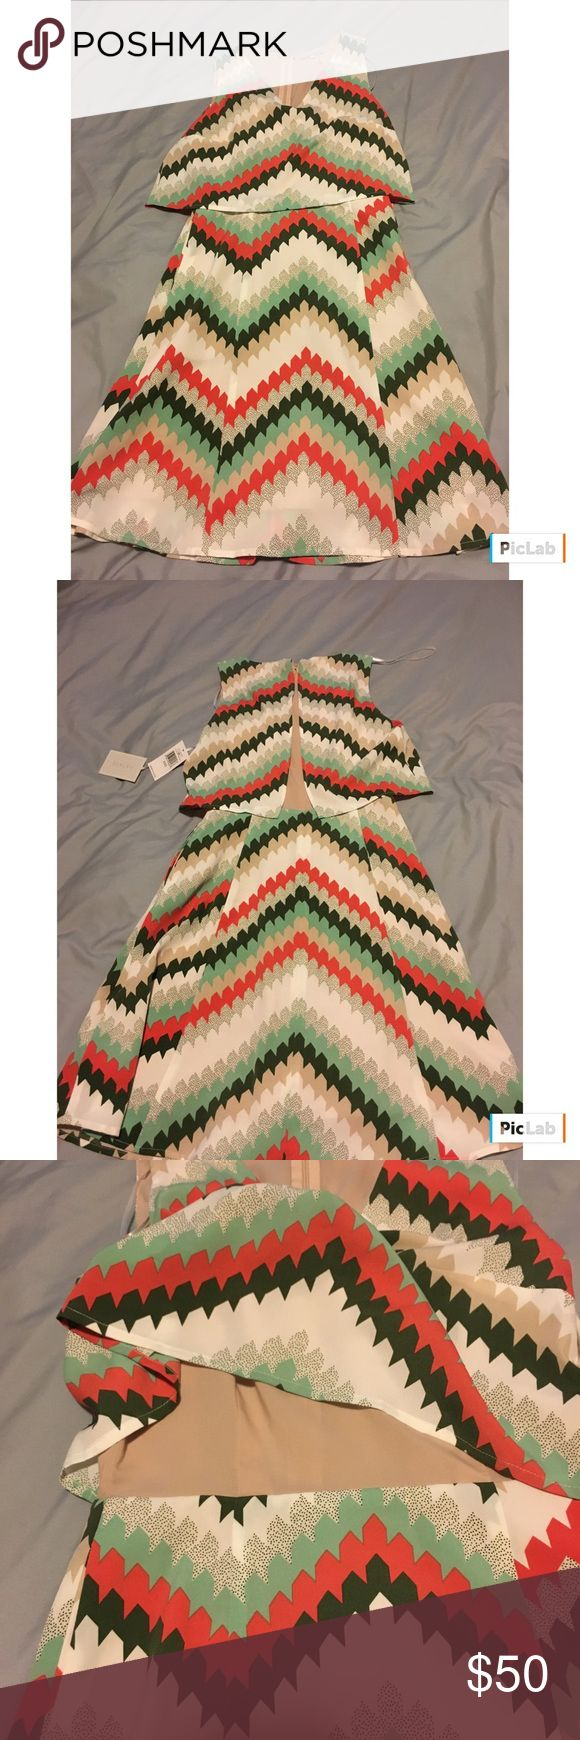 1.State Chevron Dress, size XXS, NWT 1.State Chevron Dress, size XXS, NWT. White base with orange, green and tan Chevron print. Flowy top and back over nude underneath. Zips up the back. 1. State Dresses